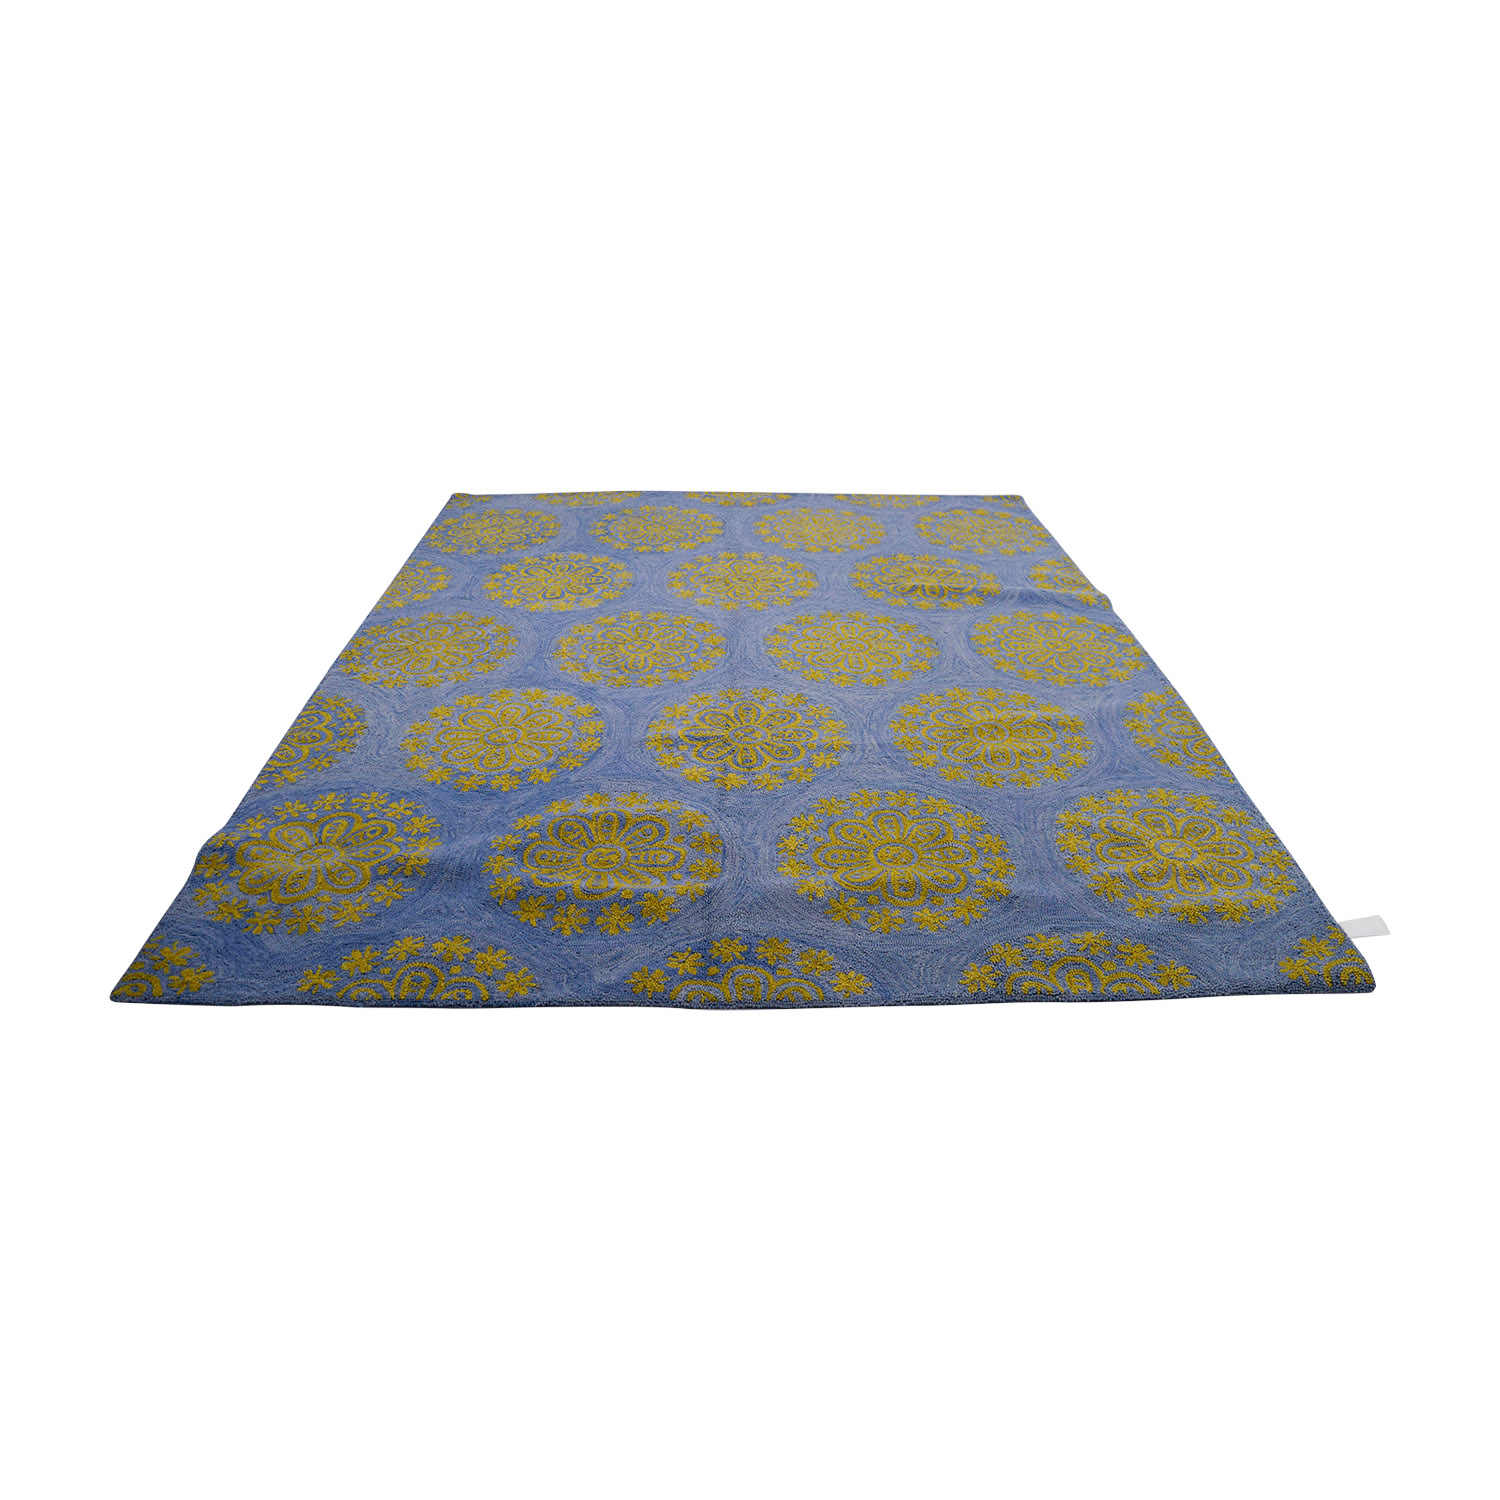 shop Obeetee Hand Hooked Blue and Yellow Medallion Rug Obeetee